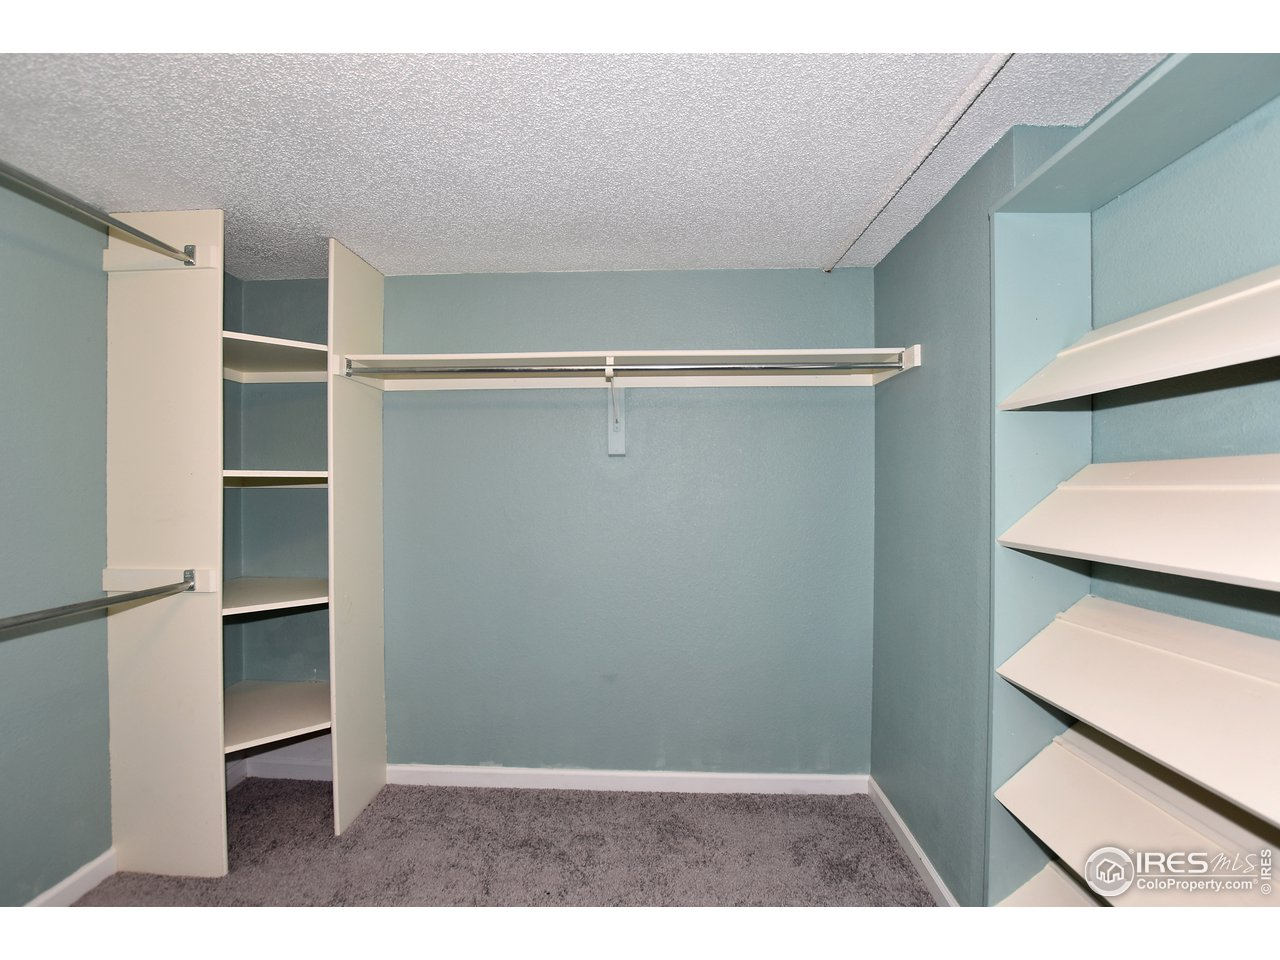 HUGE Walk-In Closet